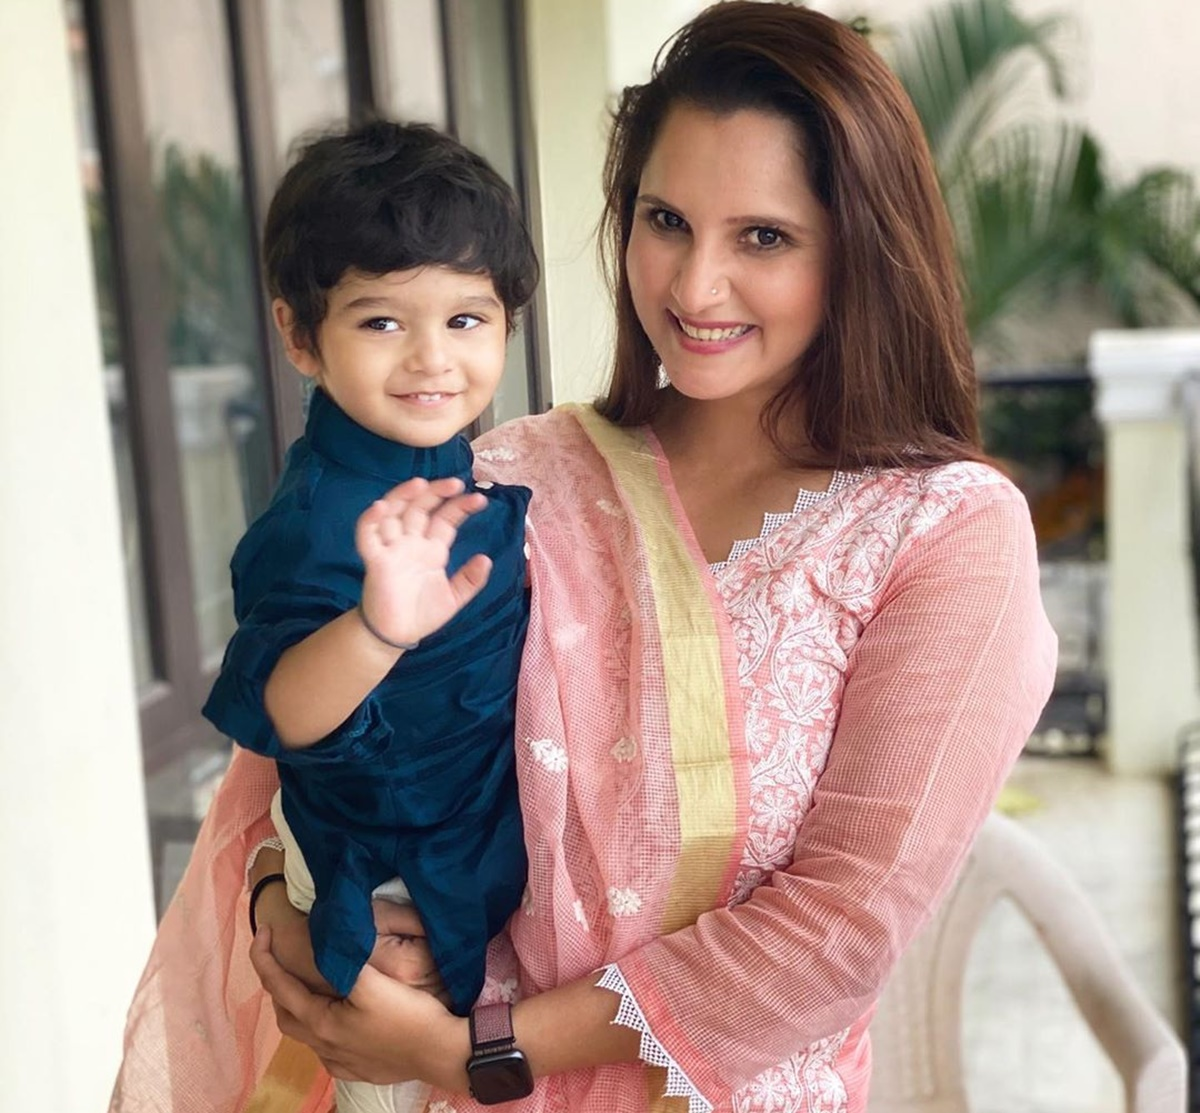 SEE: Sania teaches little Izhaan about traffic lights